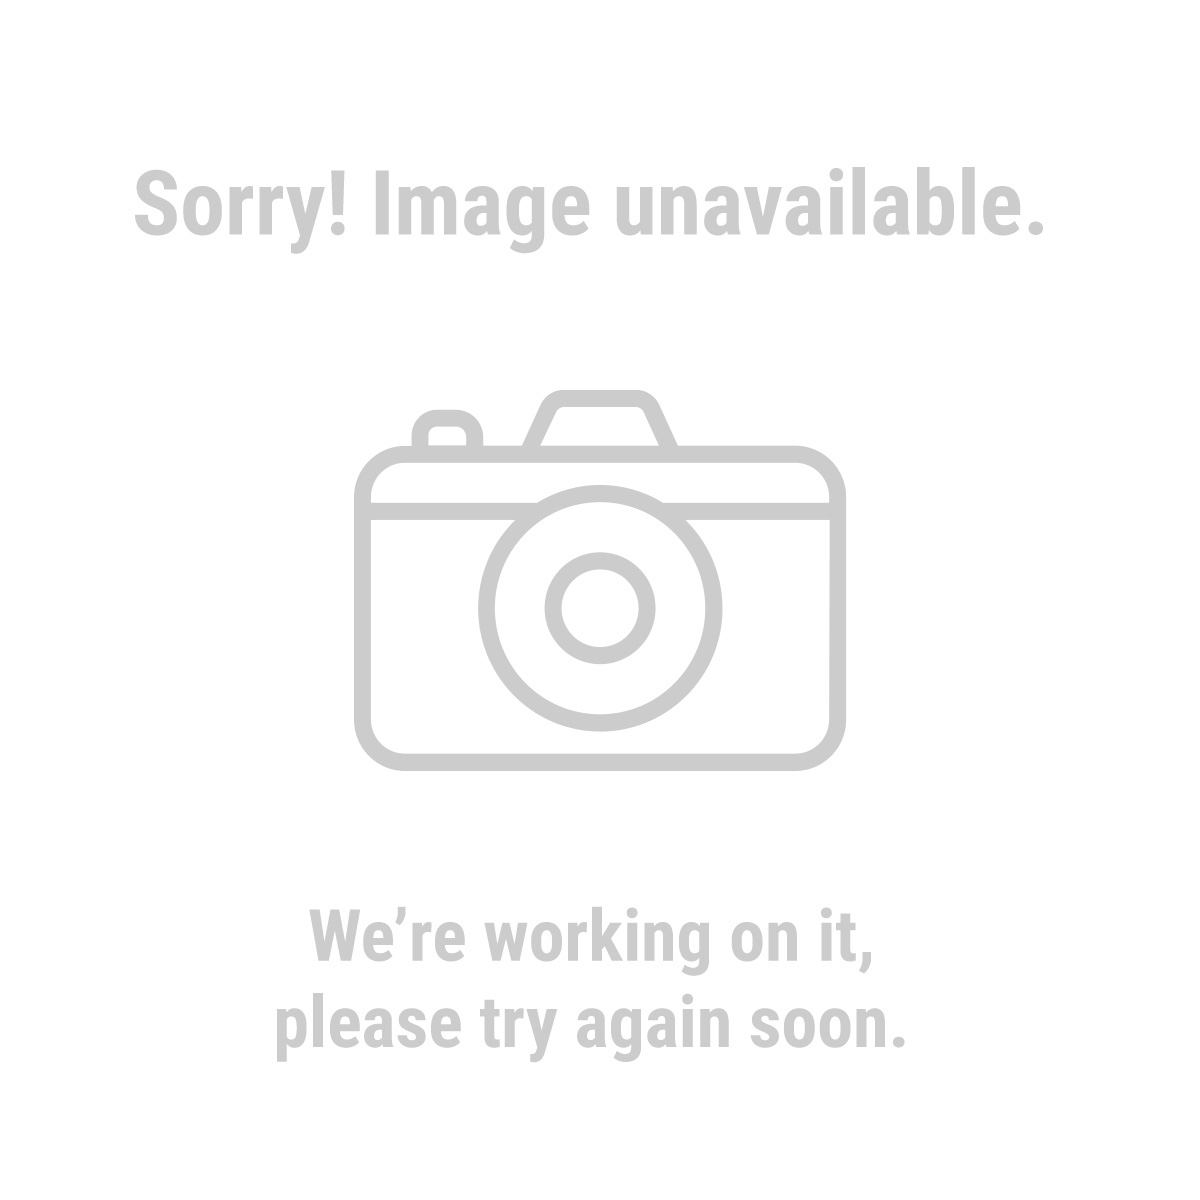 One Stop Gardens 94377 4-in-1 Solid Brass Faucet Expander